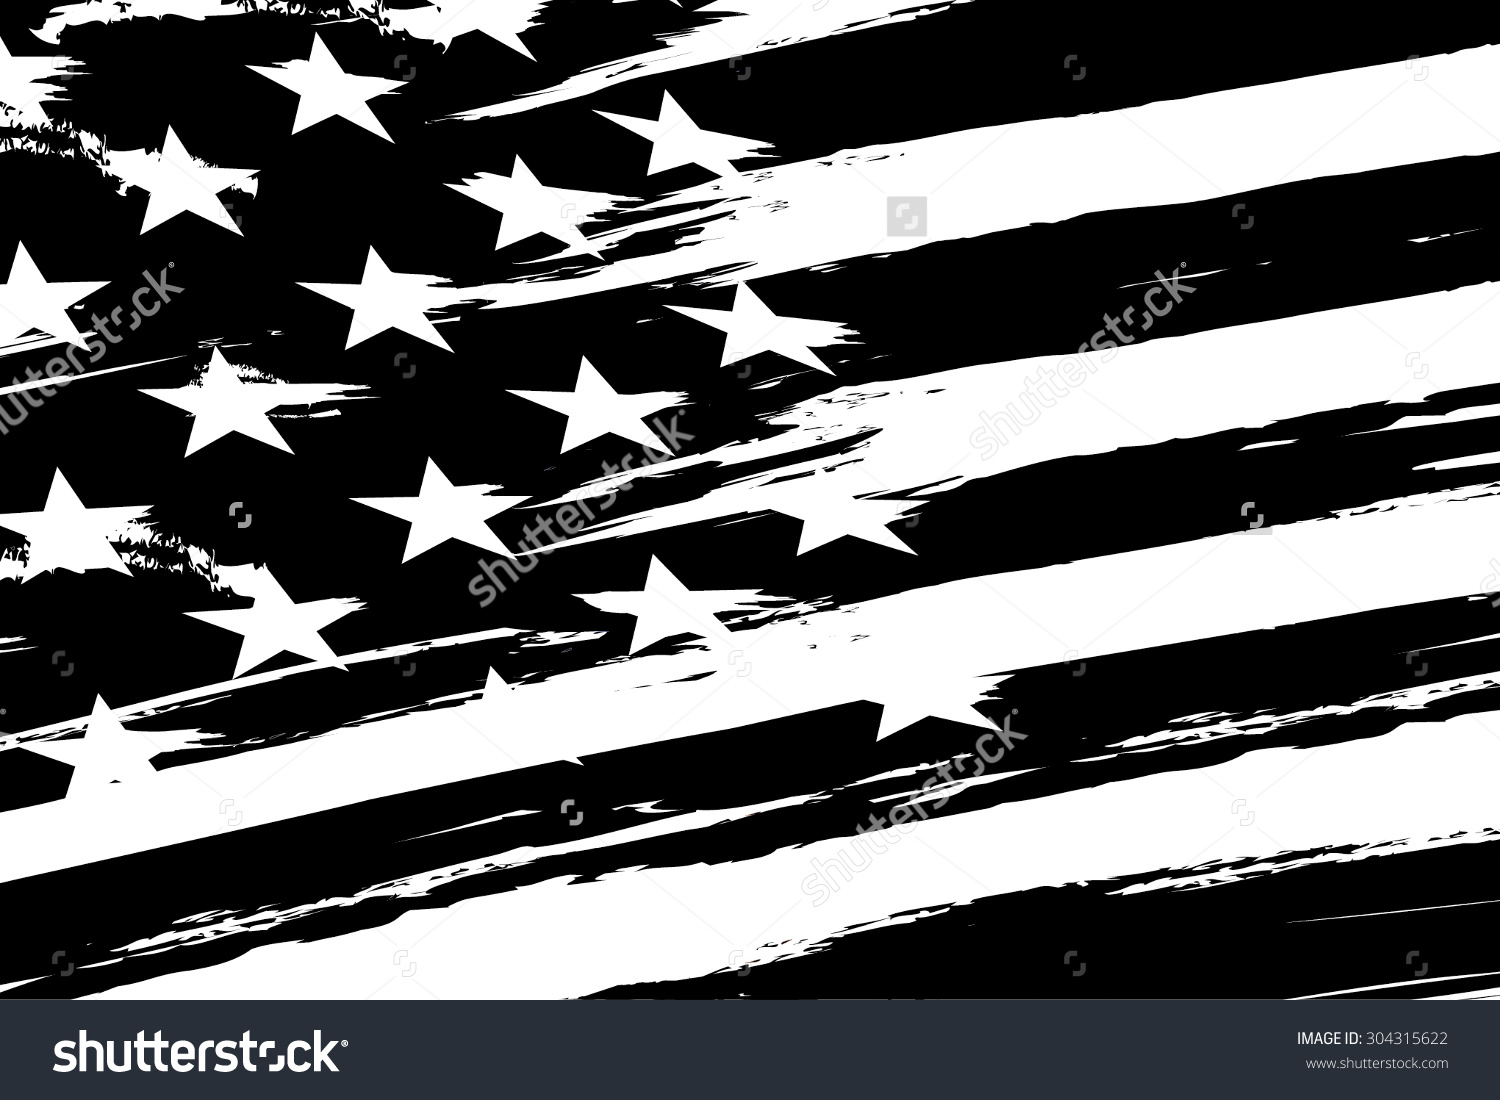 1500x1100 Vintage American Flag Clipart Black And White